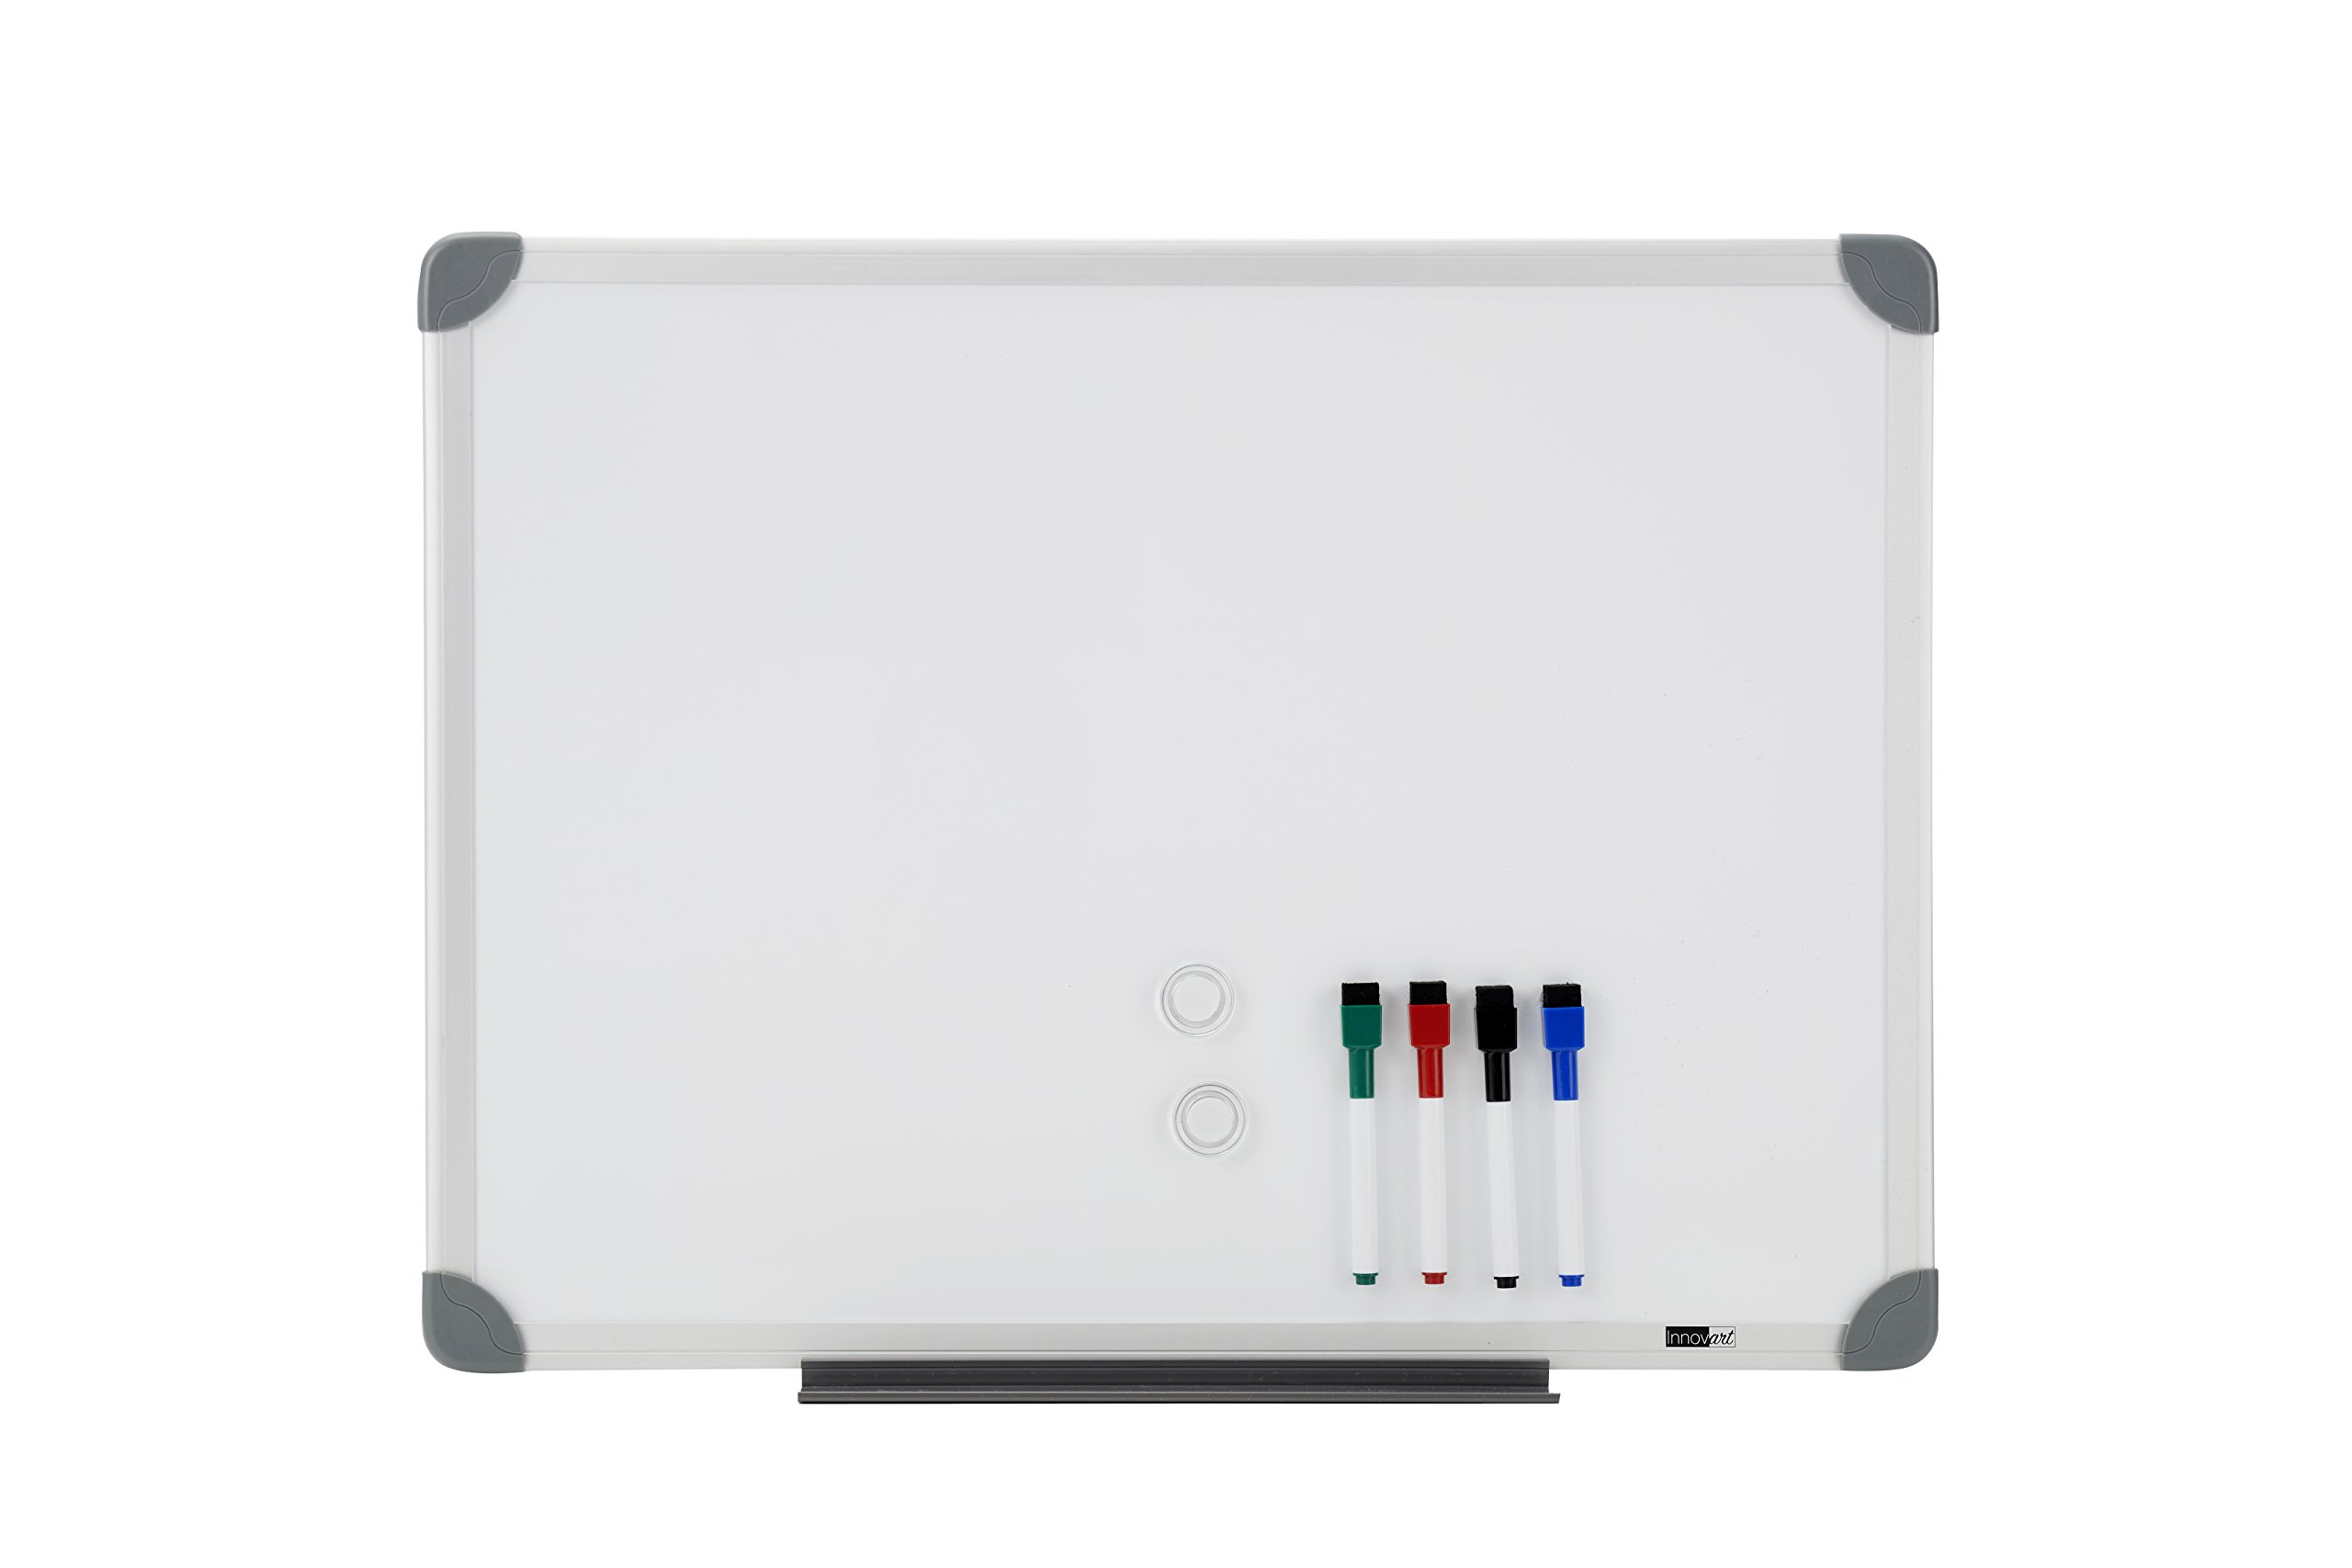 Innovart Magnetic Dry Erase Board 4 pcs Colored Dry Erase Markers and 2 pcs Magnetic,48 x 36 inches,Whiteboard/Whiteboard, Aluminium Frame UNI006